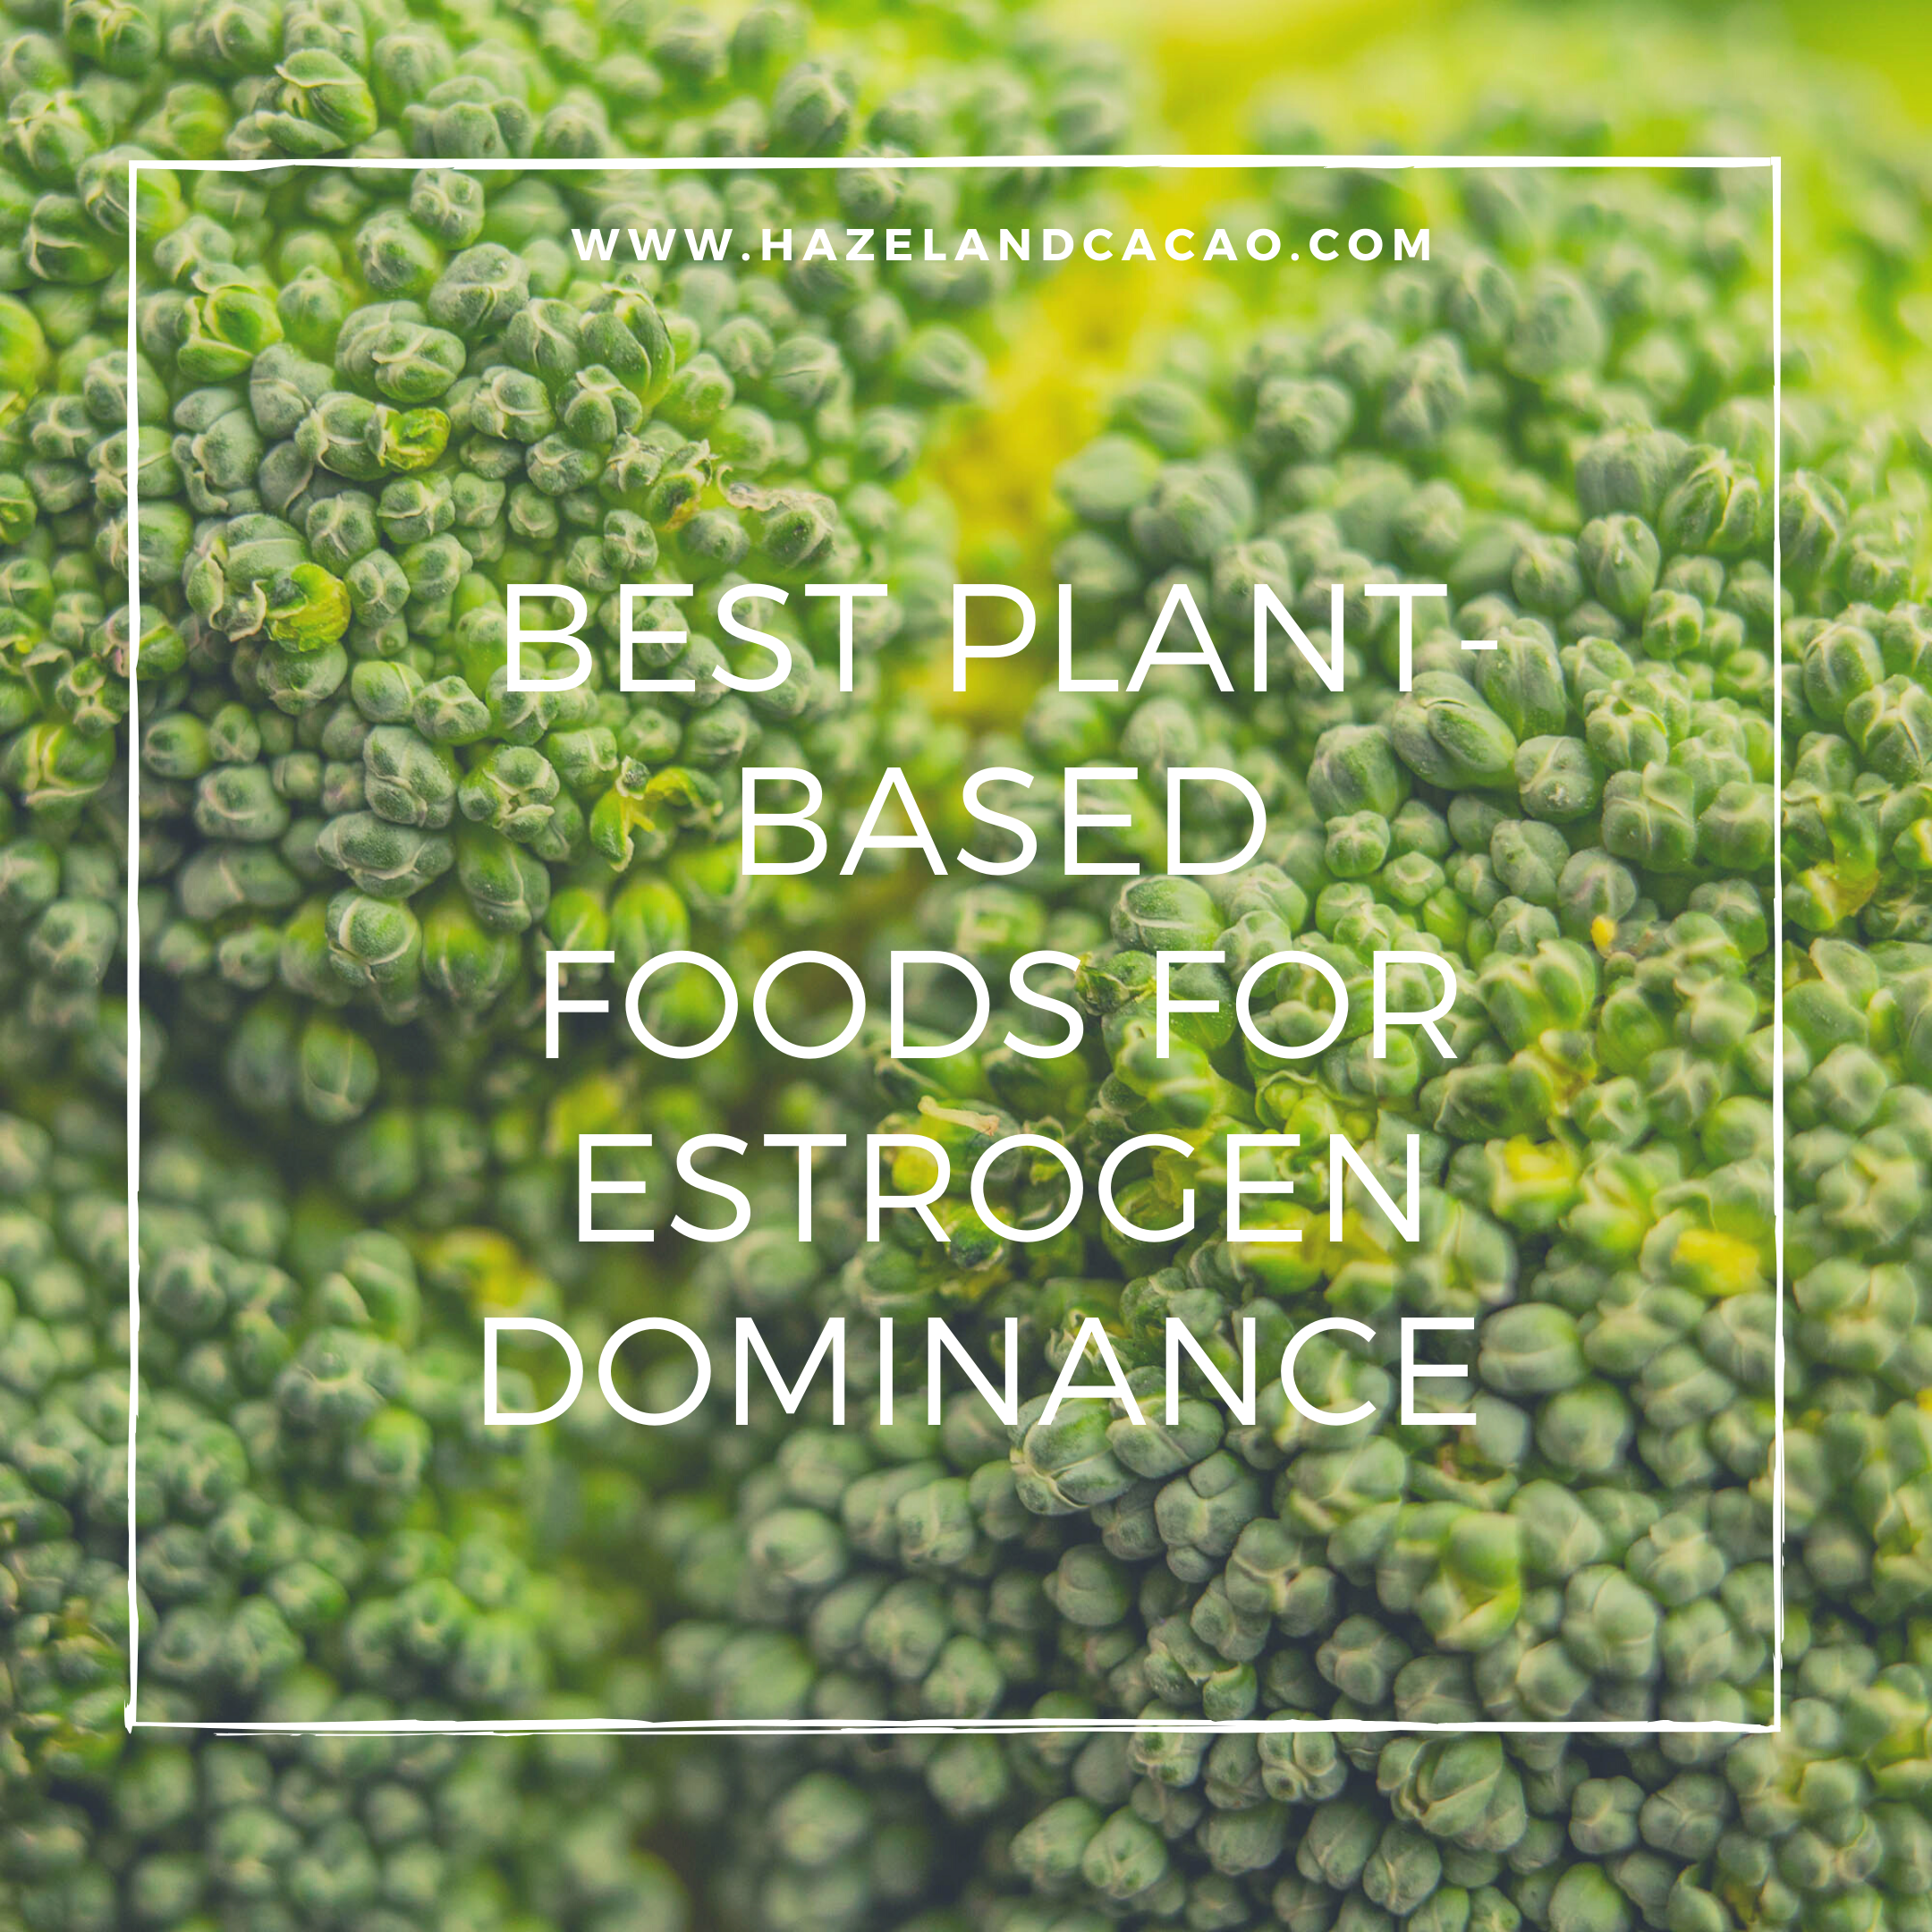 The Best Plant-Based Foods for Estrogen Dominance and Estrogen Clearance